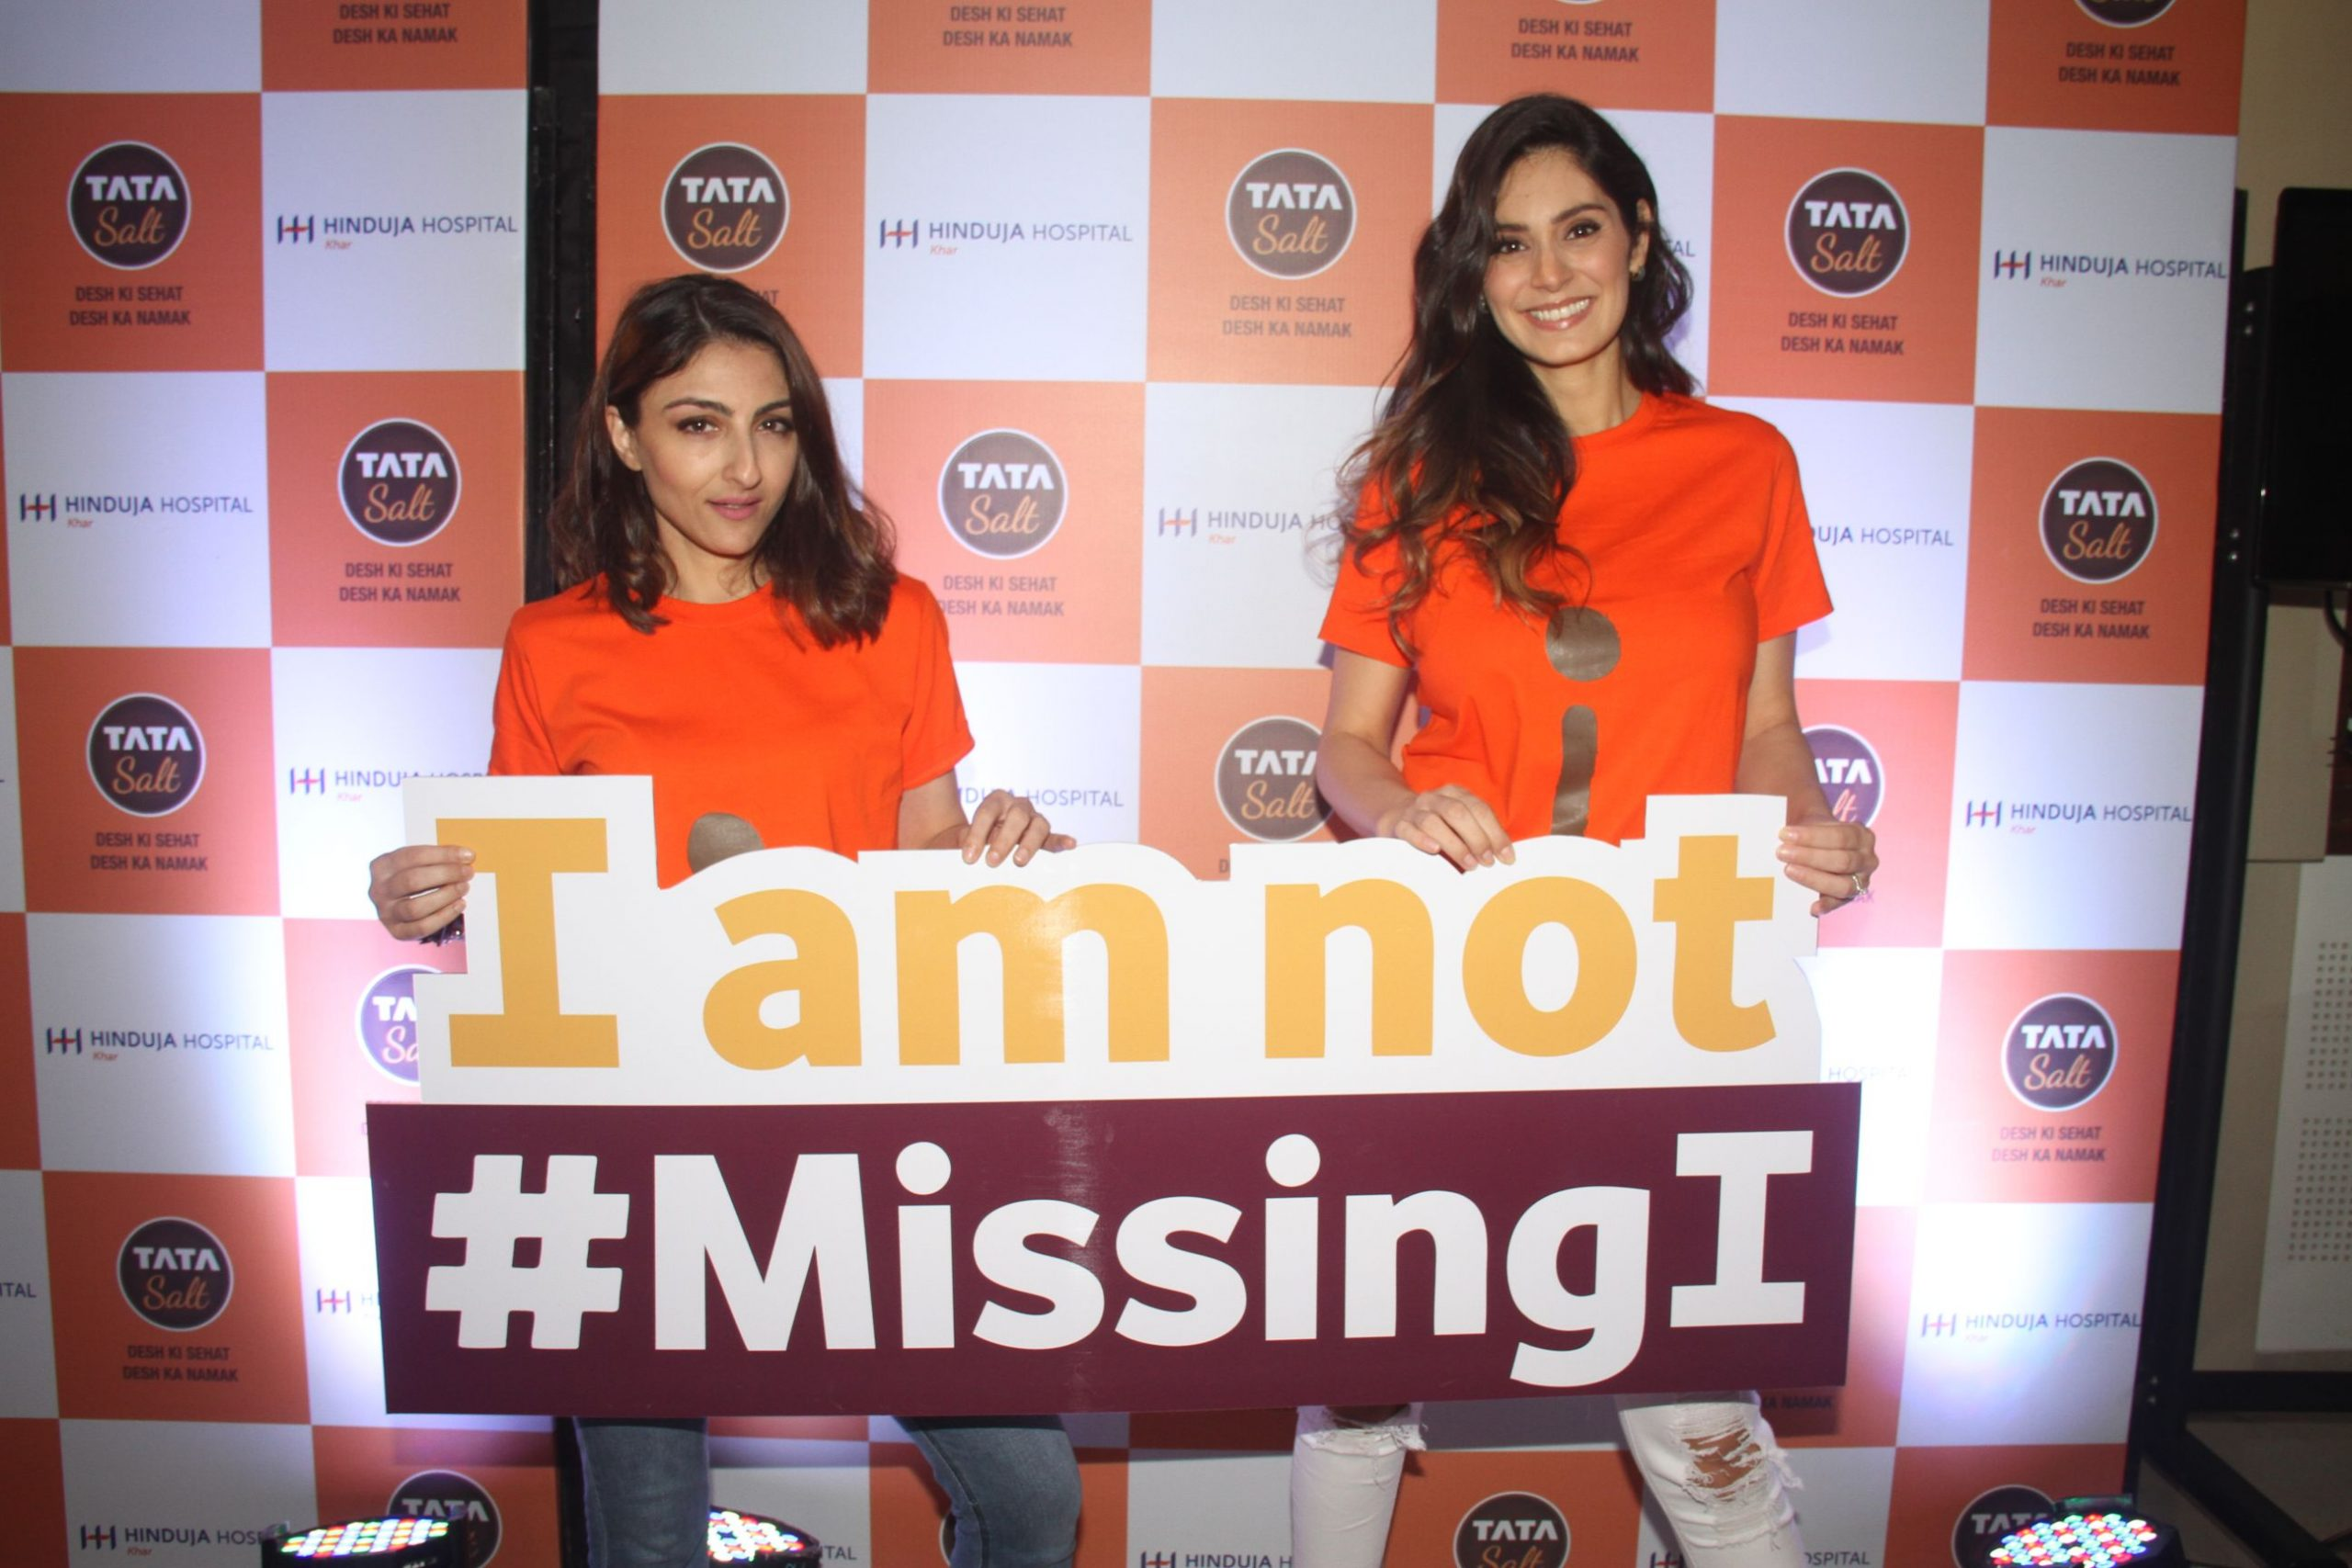 Read more about the article Tata Salt's Most Innovative Ad Campaign was Missing an I